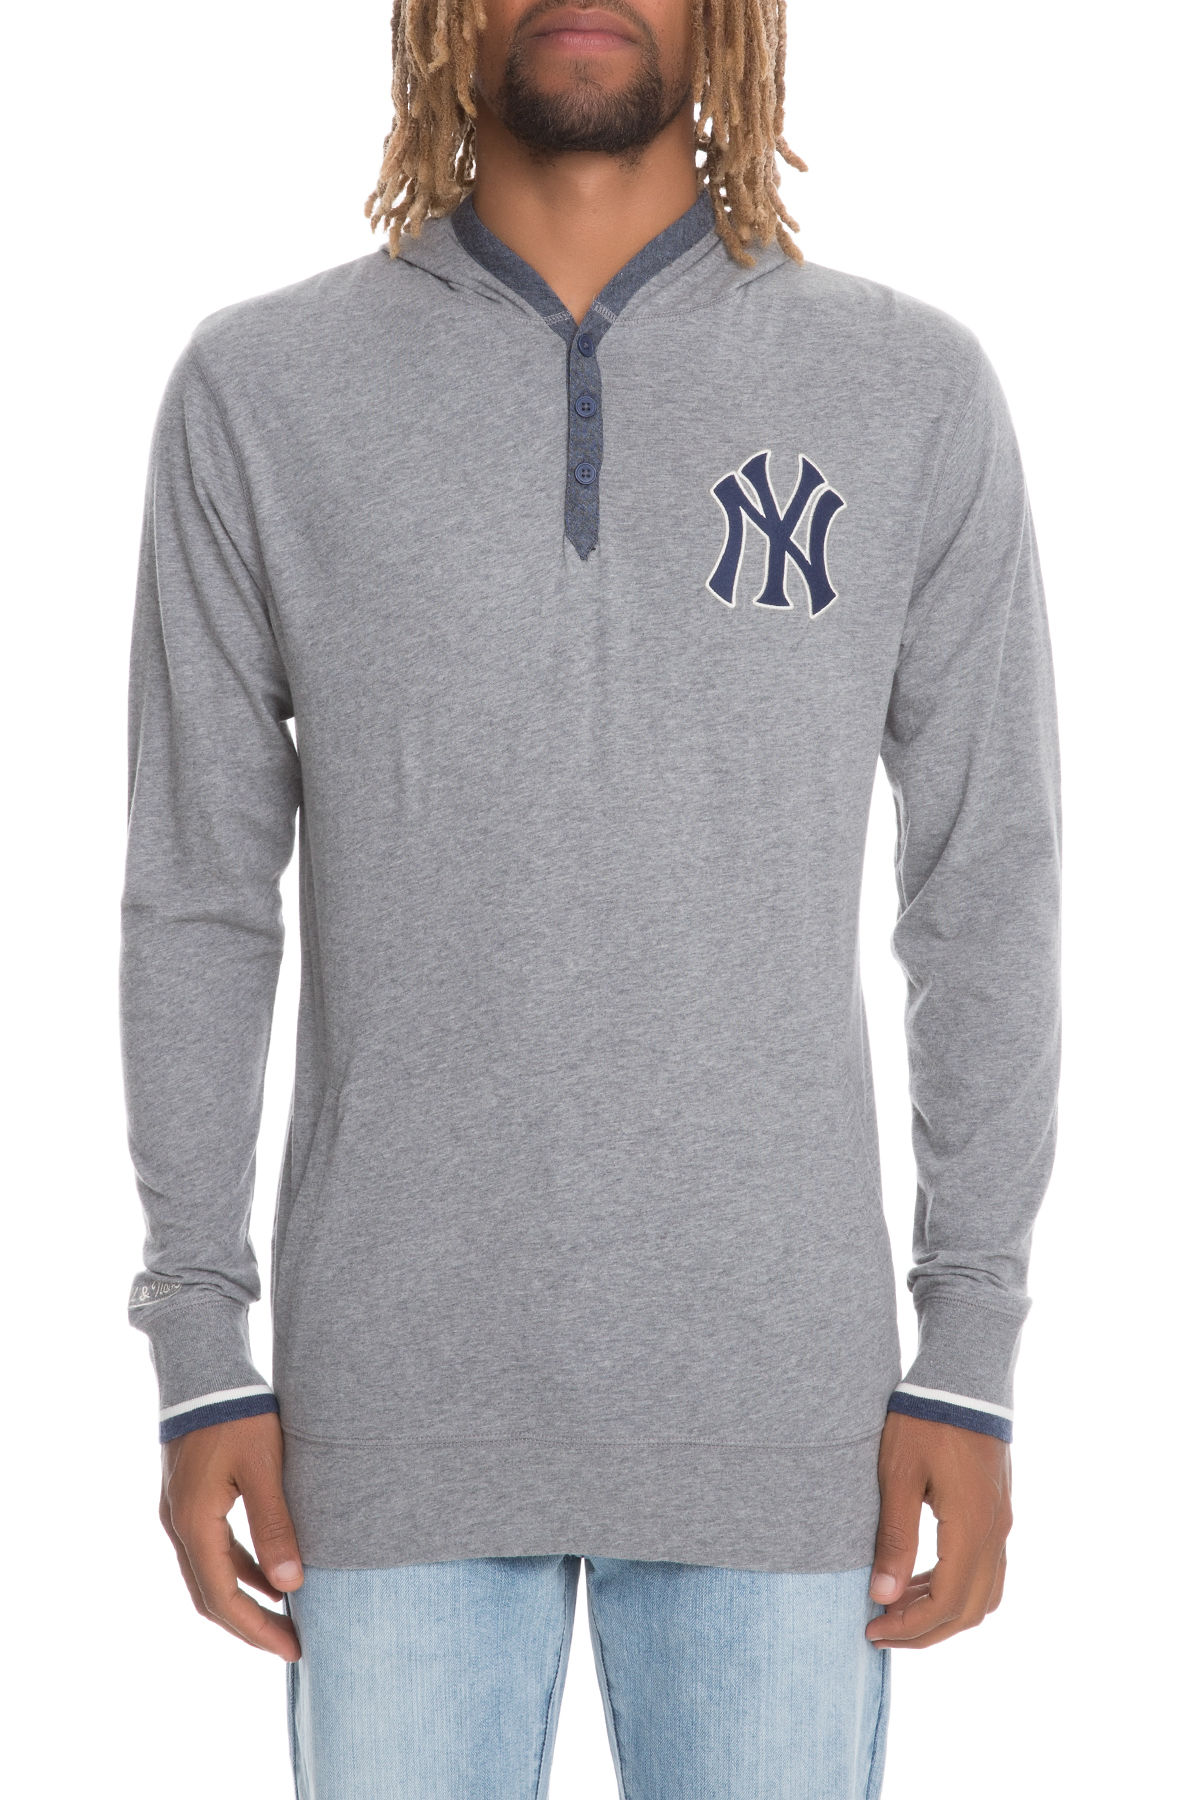 reputable site b9814 37814 The New York Yankees Seal The Win Hooded longsleeve in Grey Heather